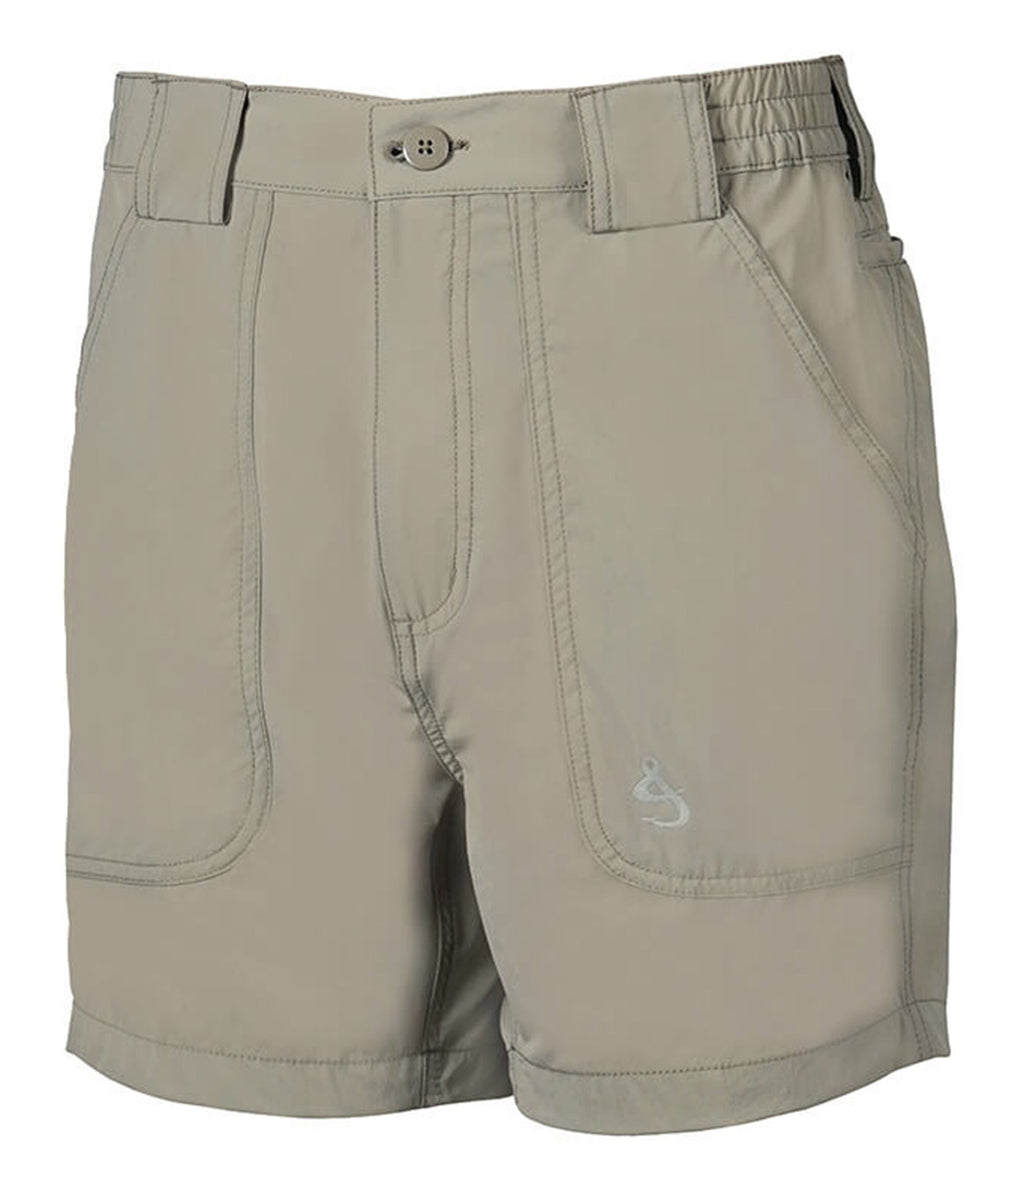 Beer Can Island Stretch Hybrid Fishing Short, Sand